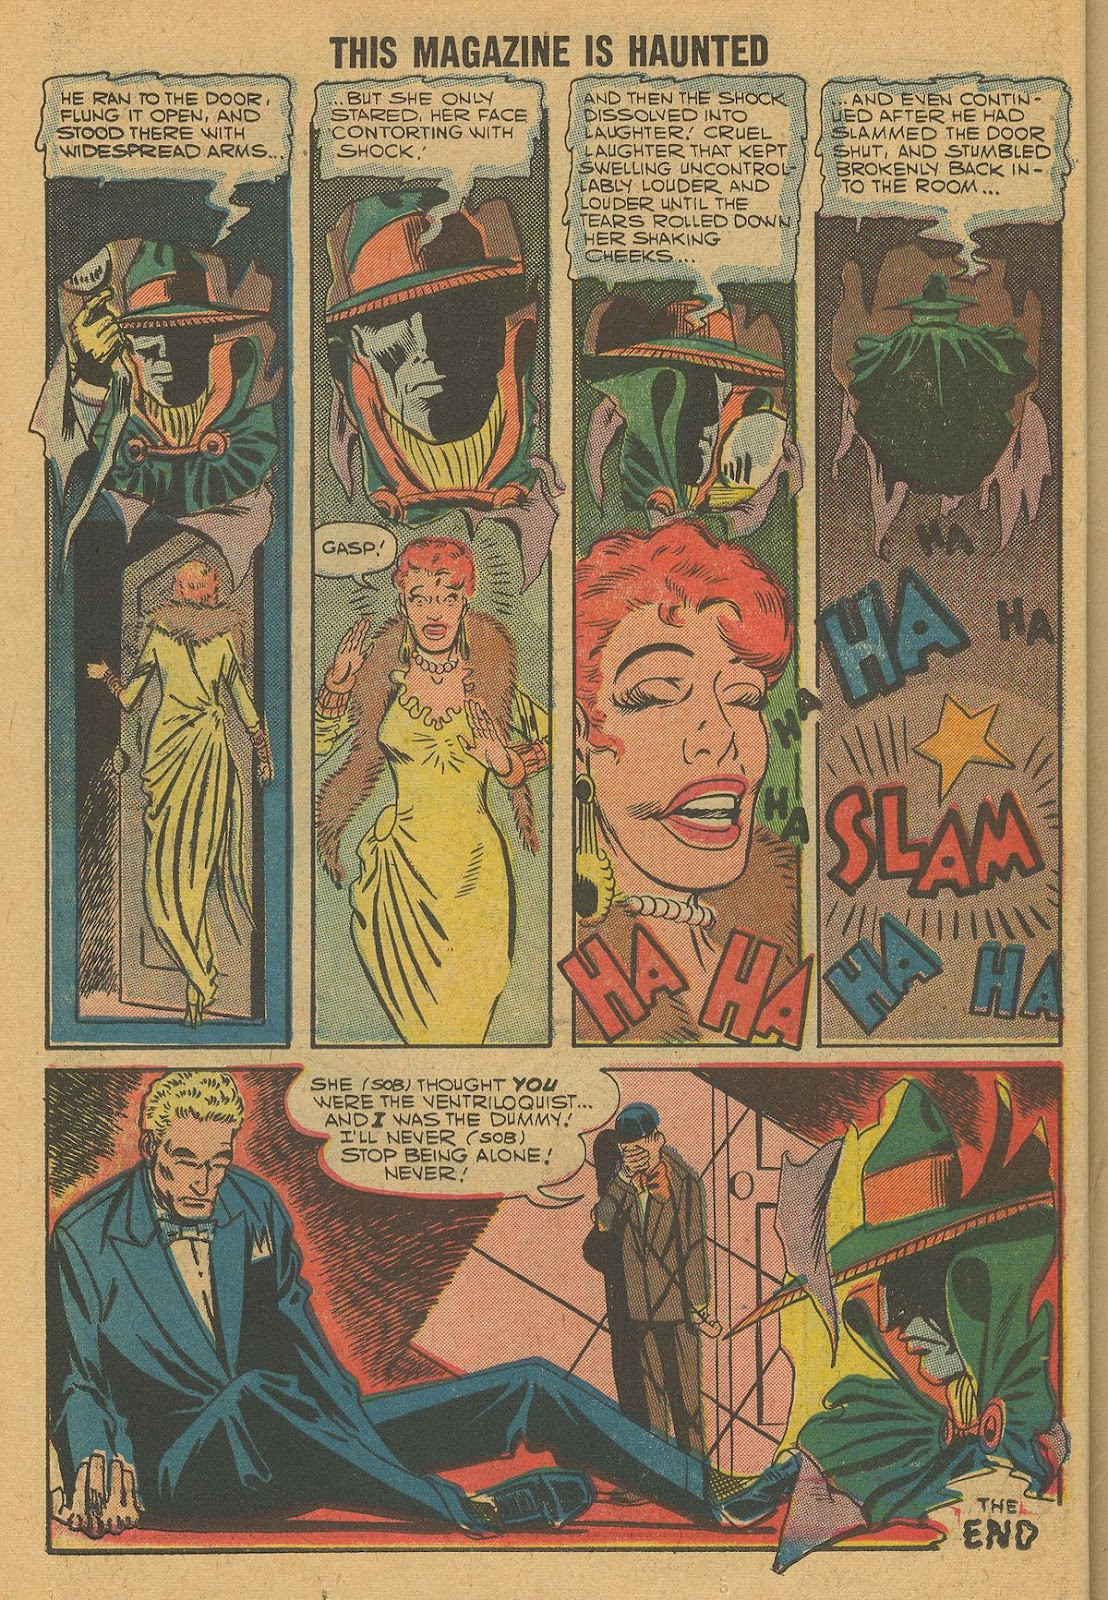 Read online This Magazine Is Haunted comic -  Issue #12 - 26